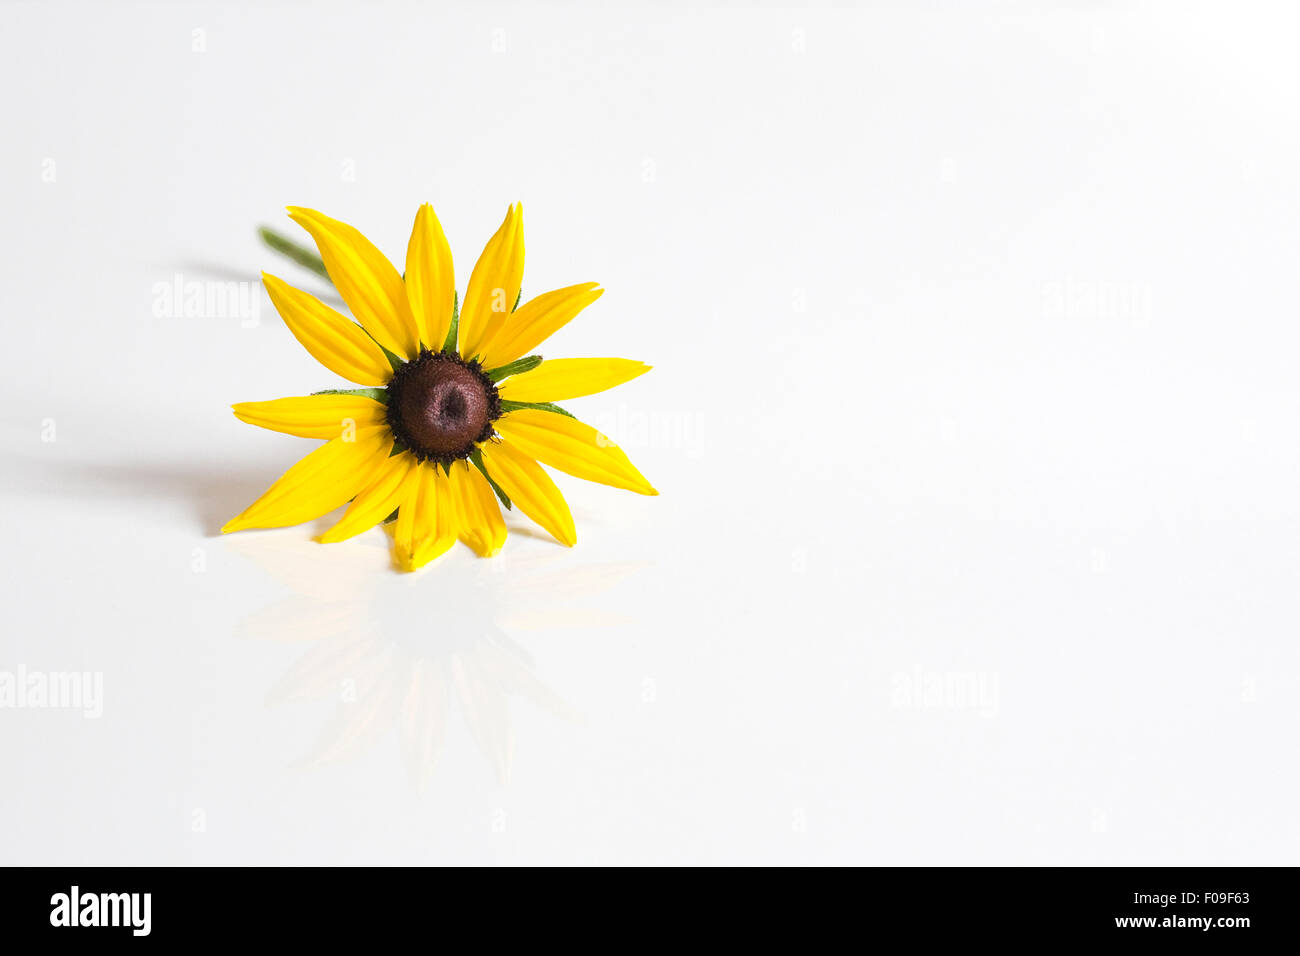 Rudbeckia Hirta. Coneflower. Single flower stem  on a white background. - Stock Image